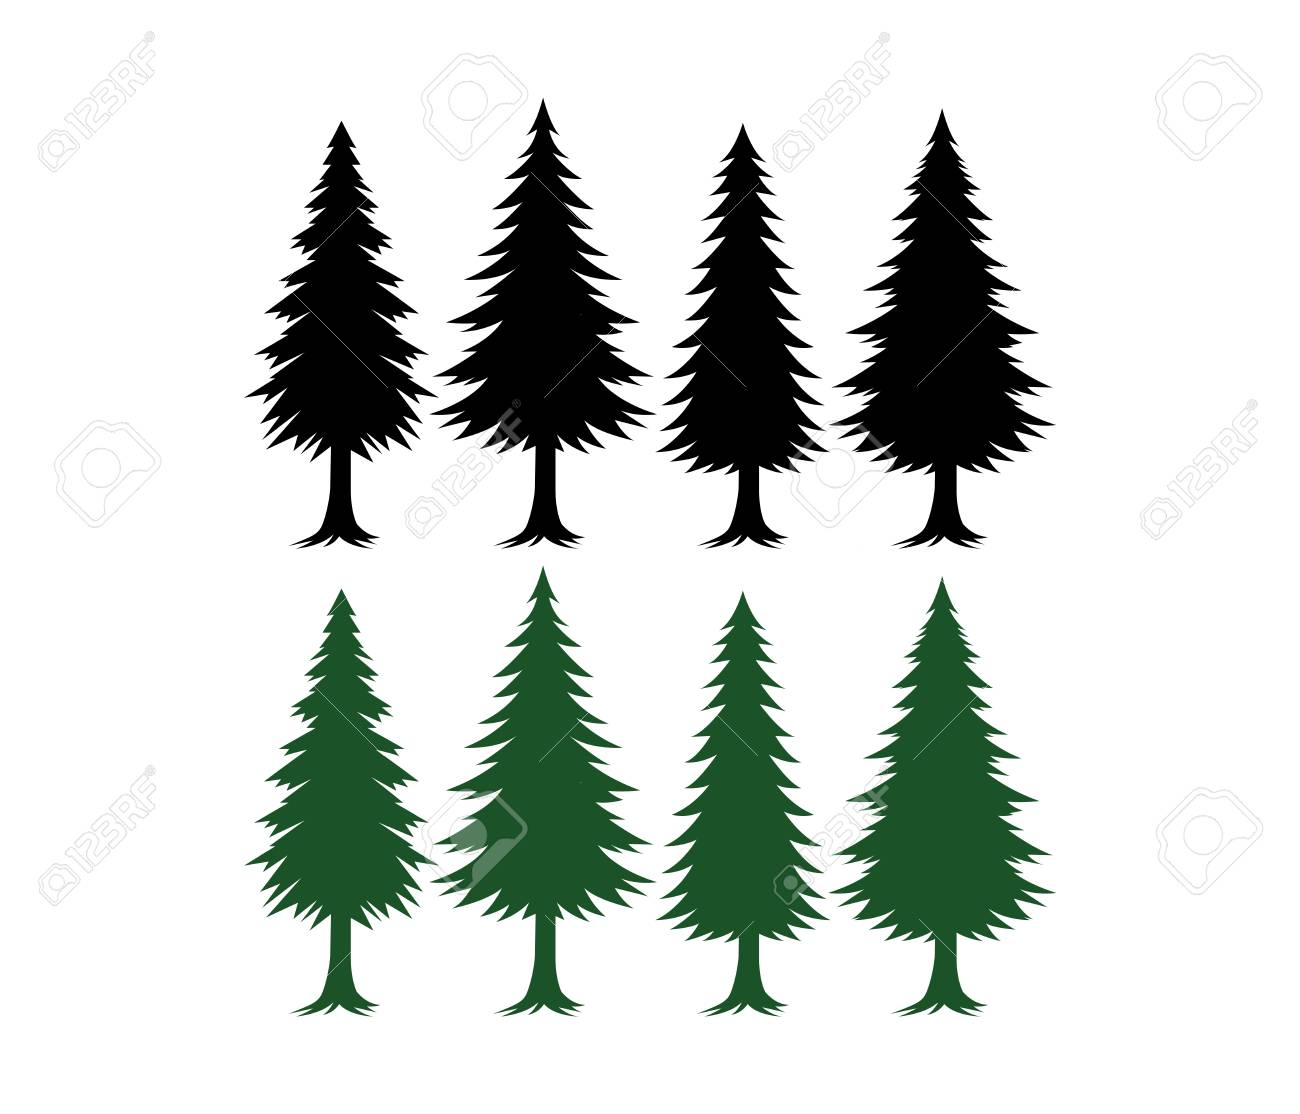 Pine Tree Silhouette Set Vector Template Green And Black Royalty Free Cliparts Vectors And Stock Illustration Image 103250841 Forest pine, fir and spruce trees cards with copy space for xmas and new year winter. pine tree silhouette set vector template green and black